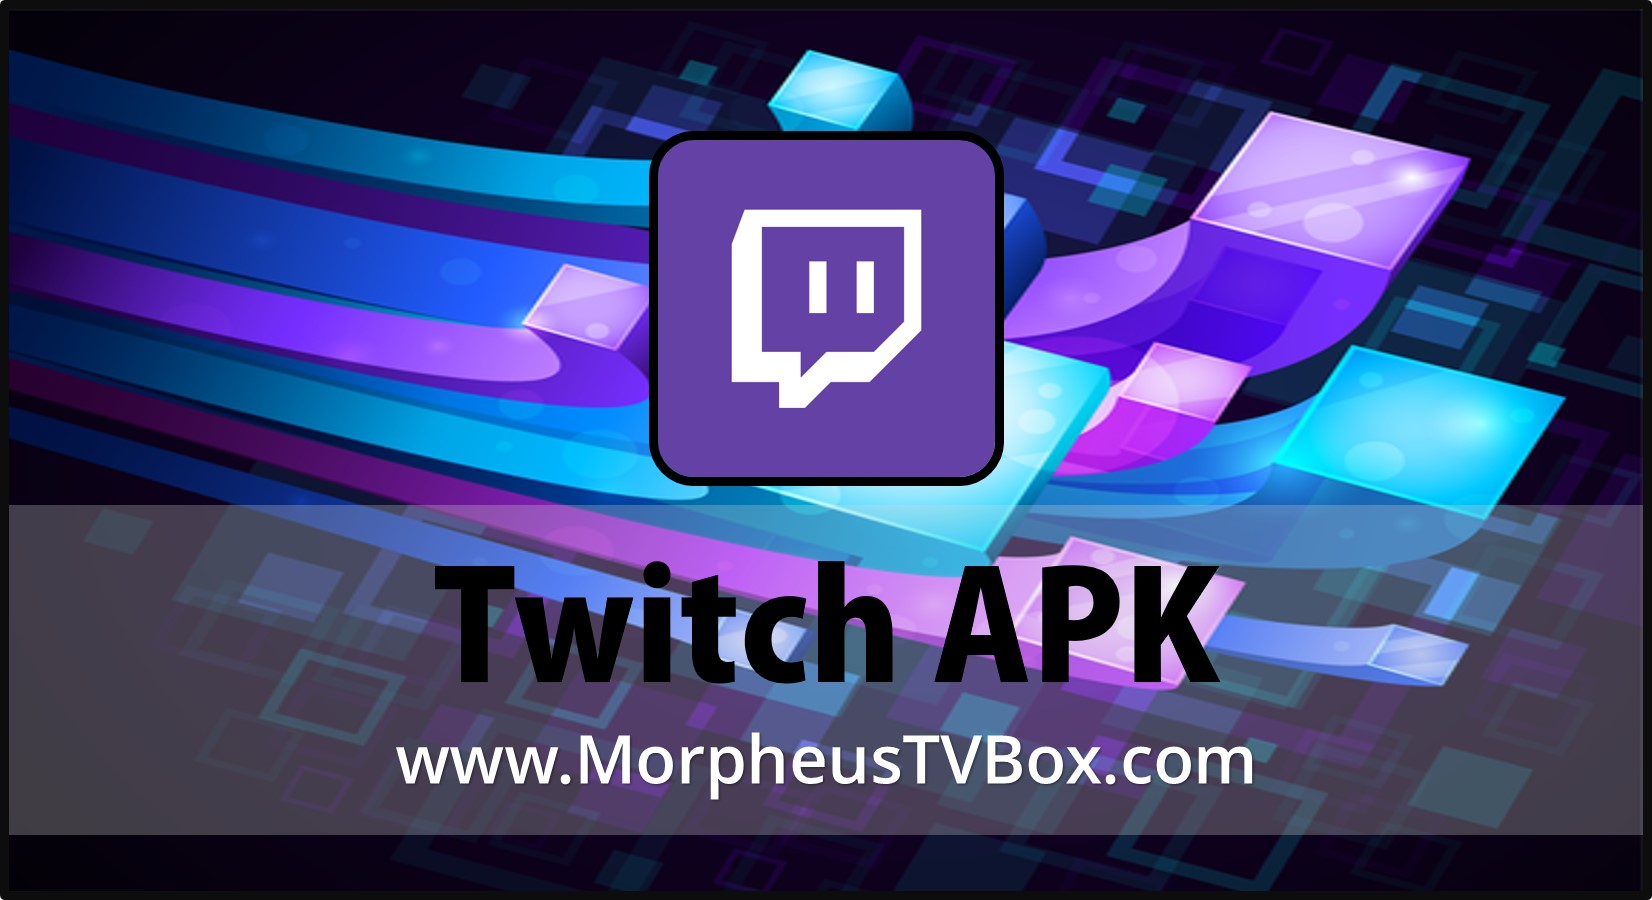 twitch apk download